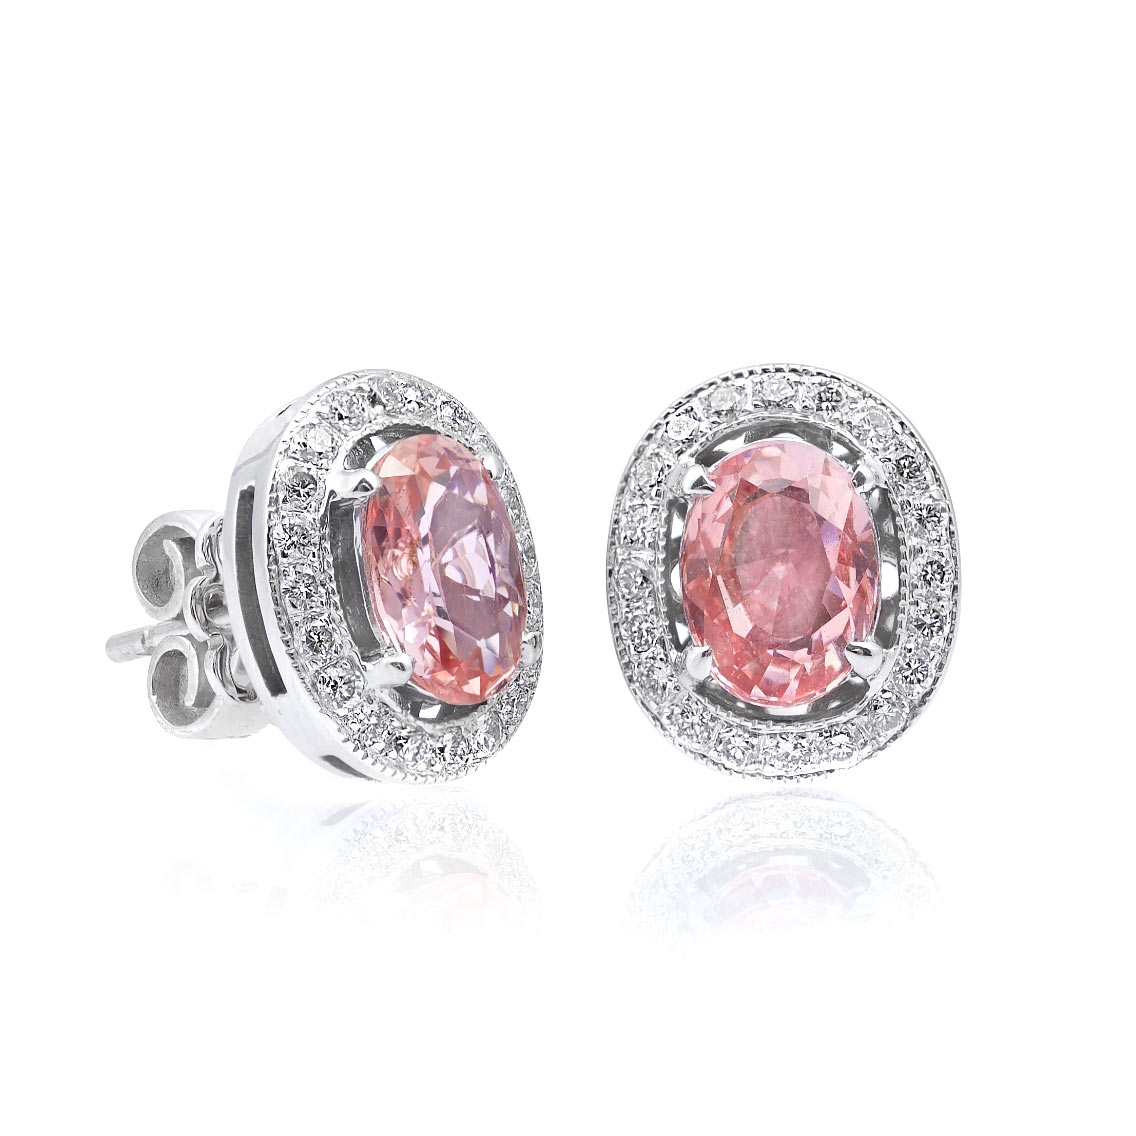 jewelry platinum ring ed sapphire in unenhanced soleste hei constrain id wid padparadscha fmt fit earrings tiffany items